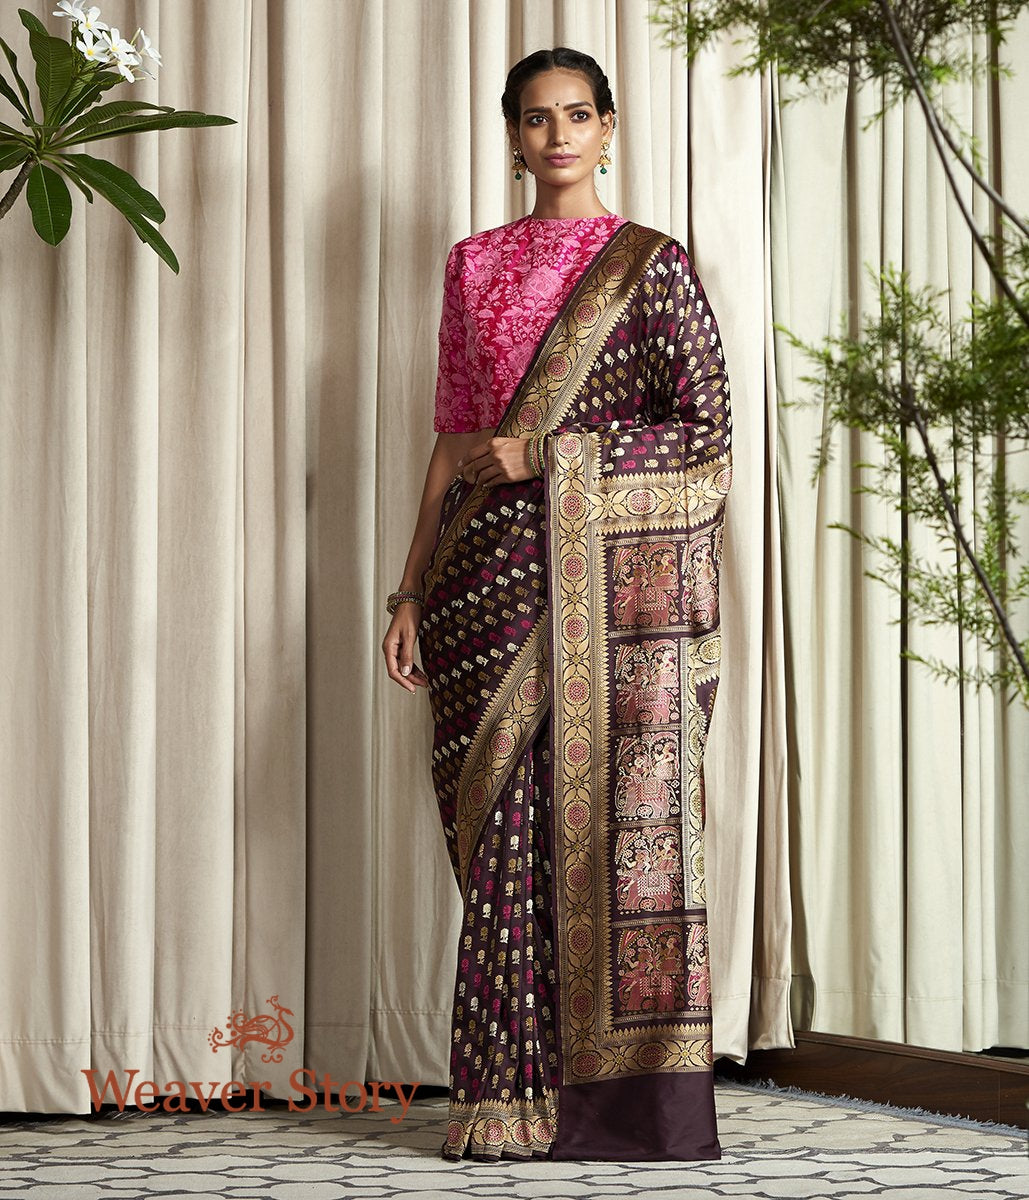 Banaras Baluchari saree in Brown with an elaborate elephant pallu